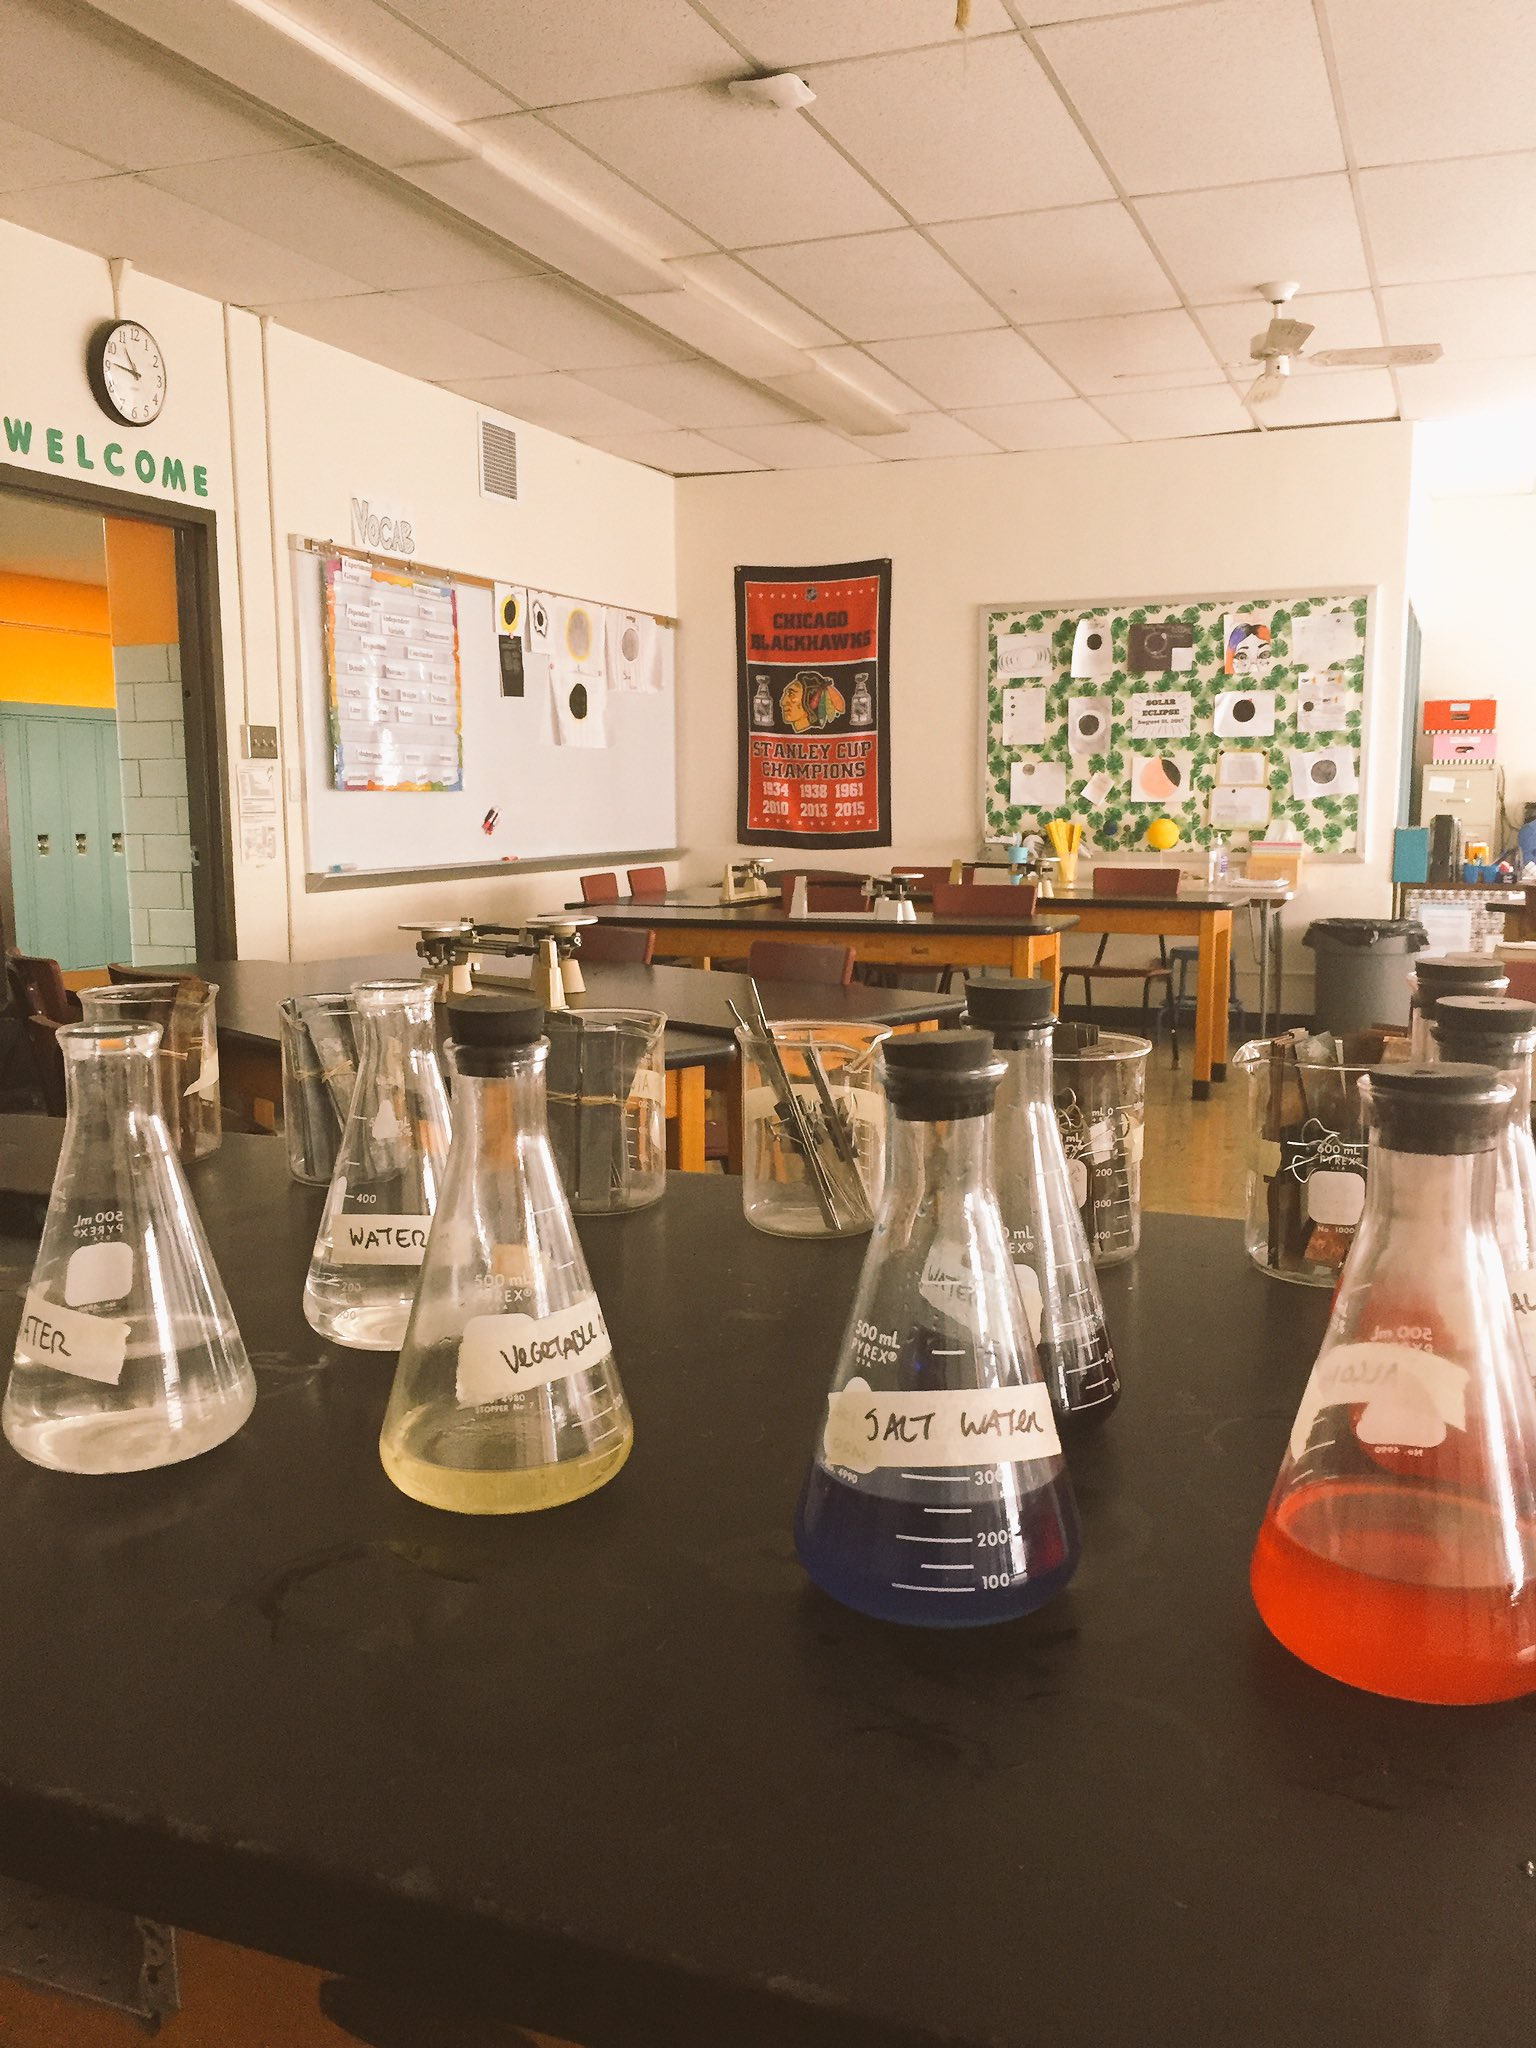 Density labs continue in 8th grade science #wgbuzz https://t.co/iohZ3JBqEO